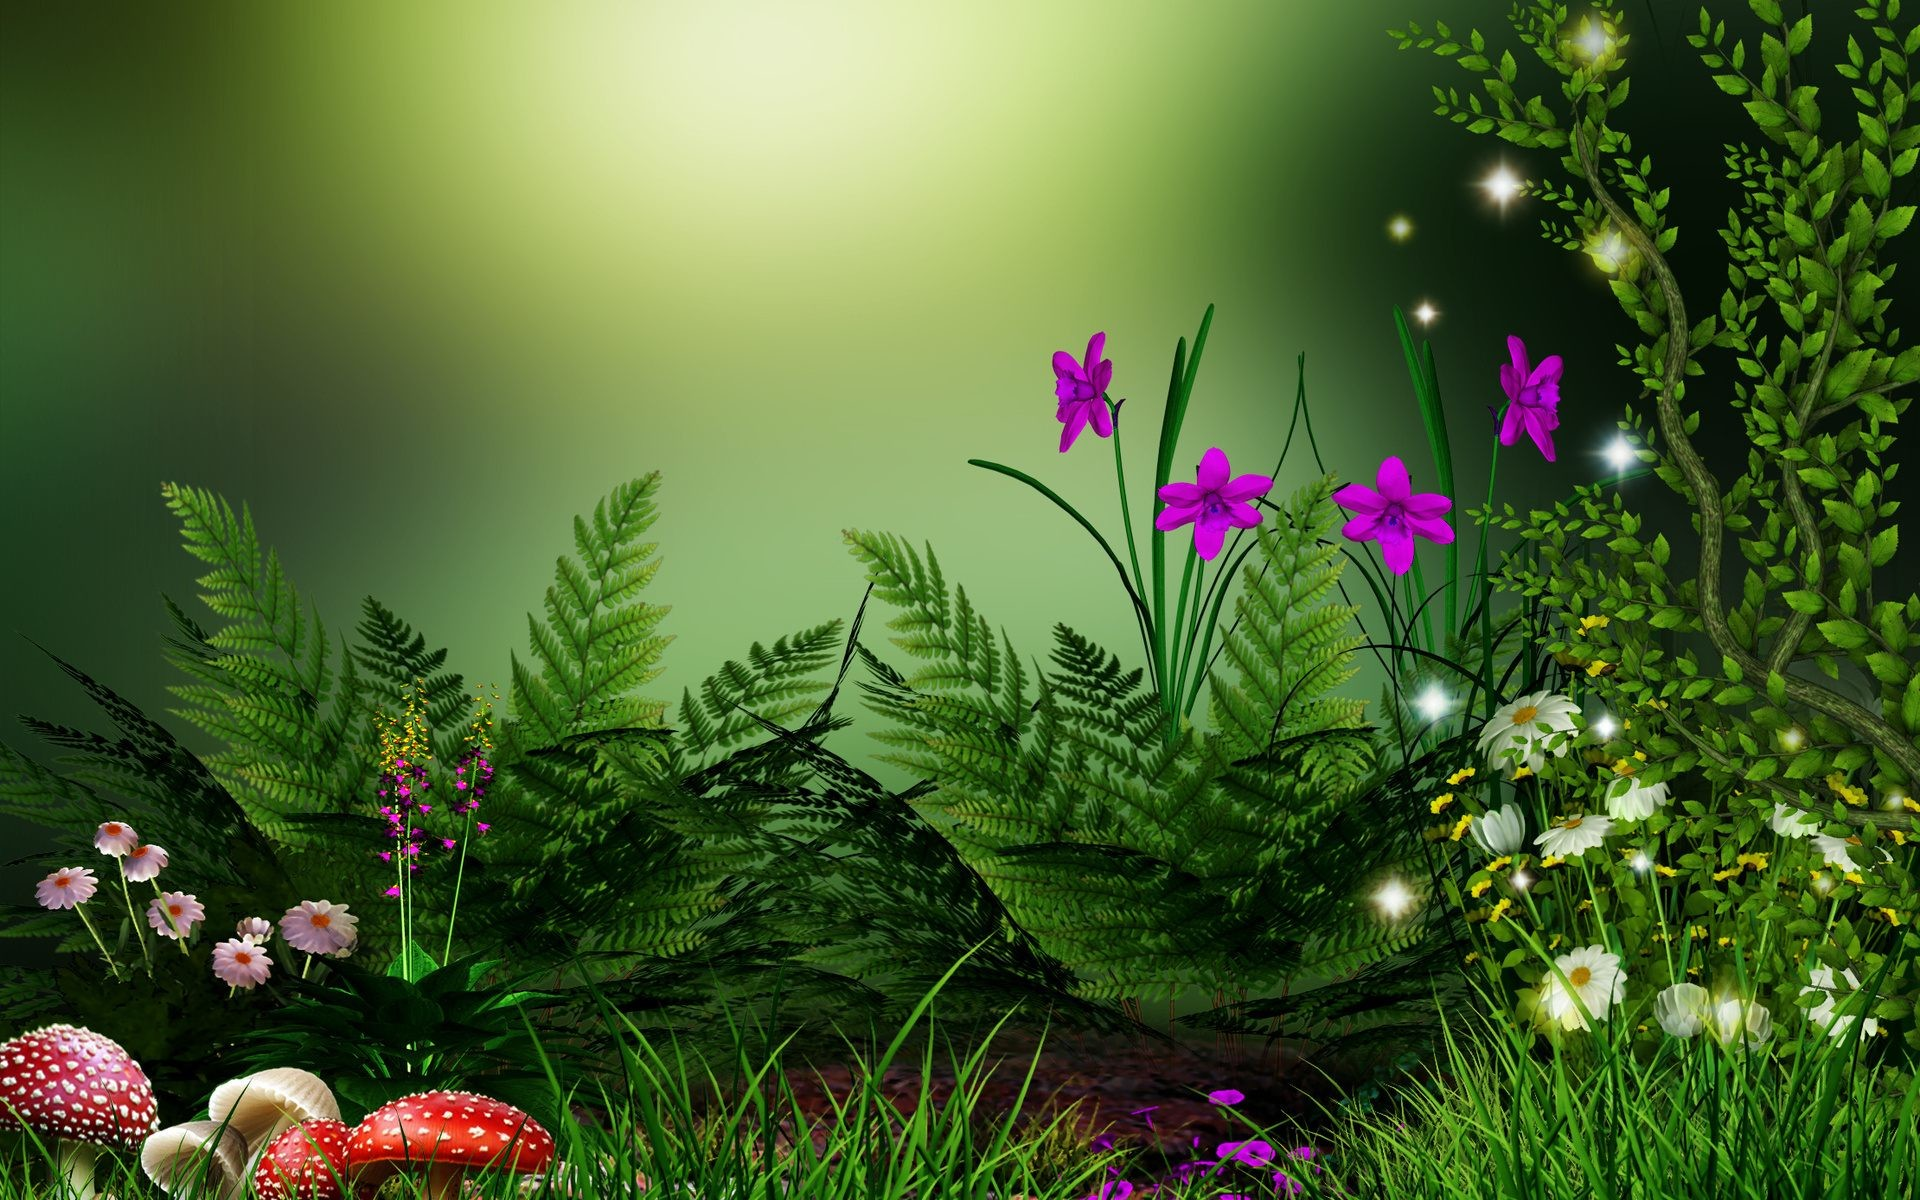 Natural Hd Wallpapers 73 Background Pictures